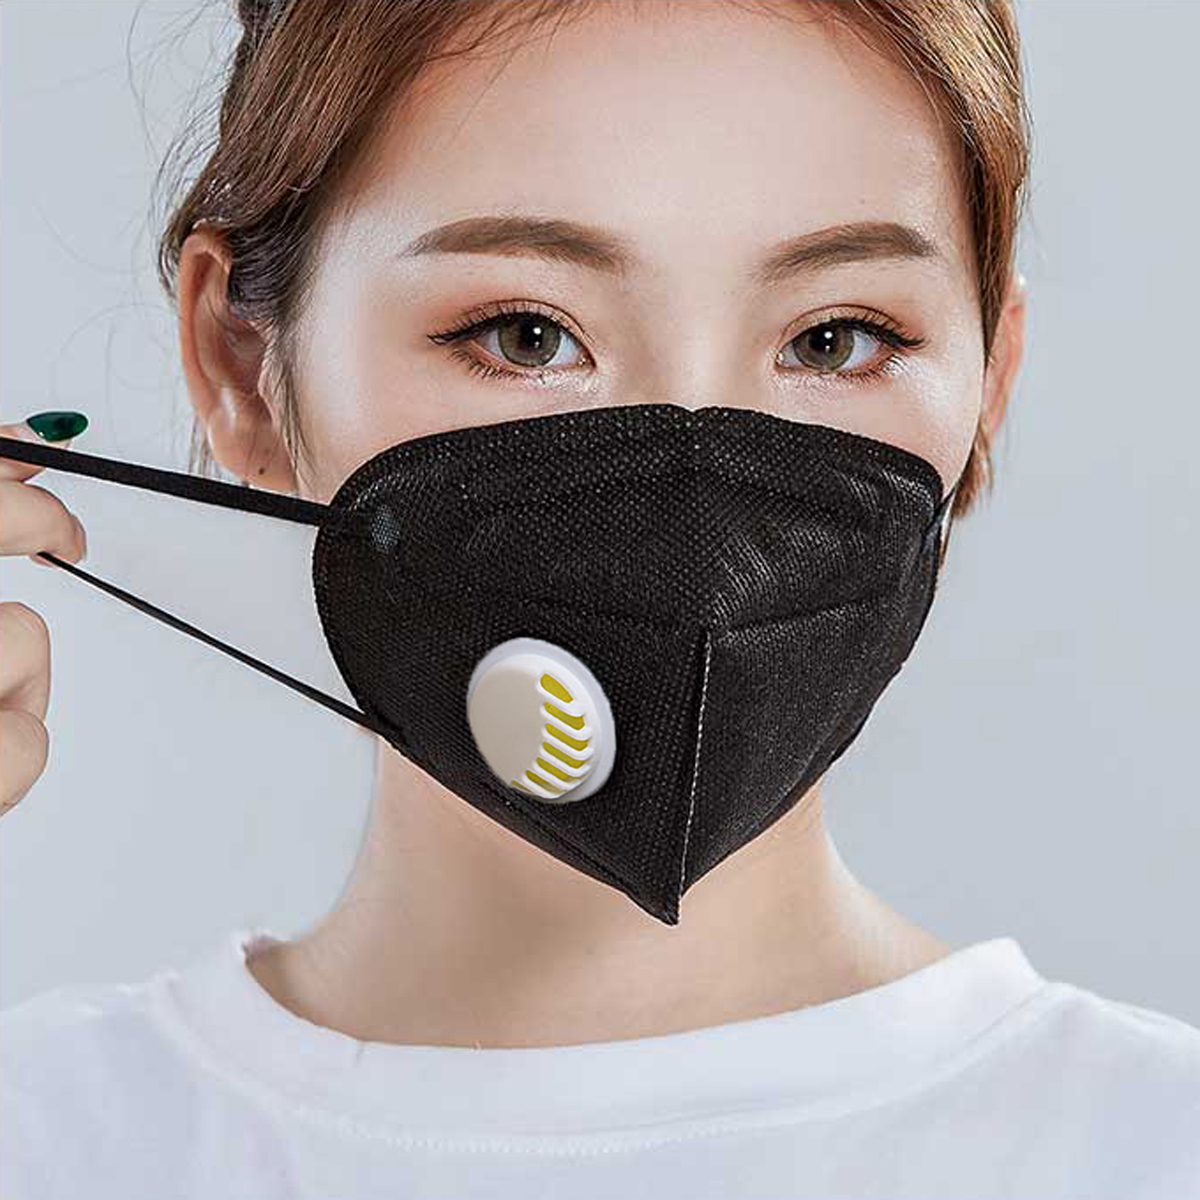 Unisex Mouth Mask Disposable Anti Pollution Dustproof Mask Mouth Activated Carbon Filter Filtration PM2.5 Anti Haze Mouth Mask